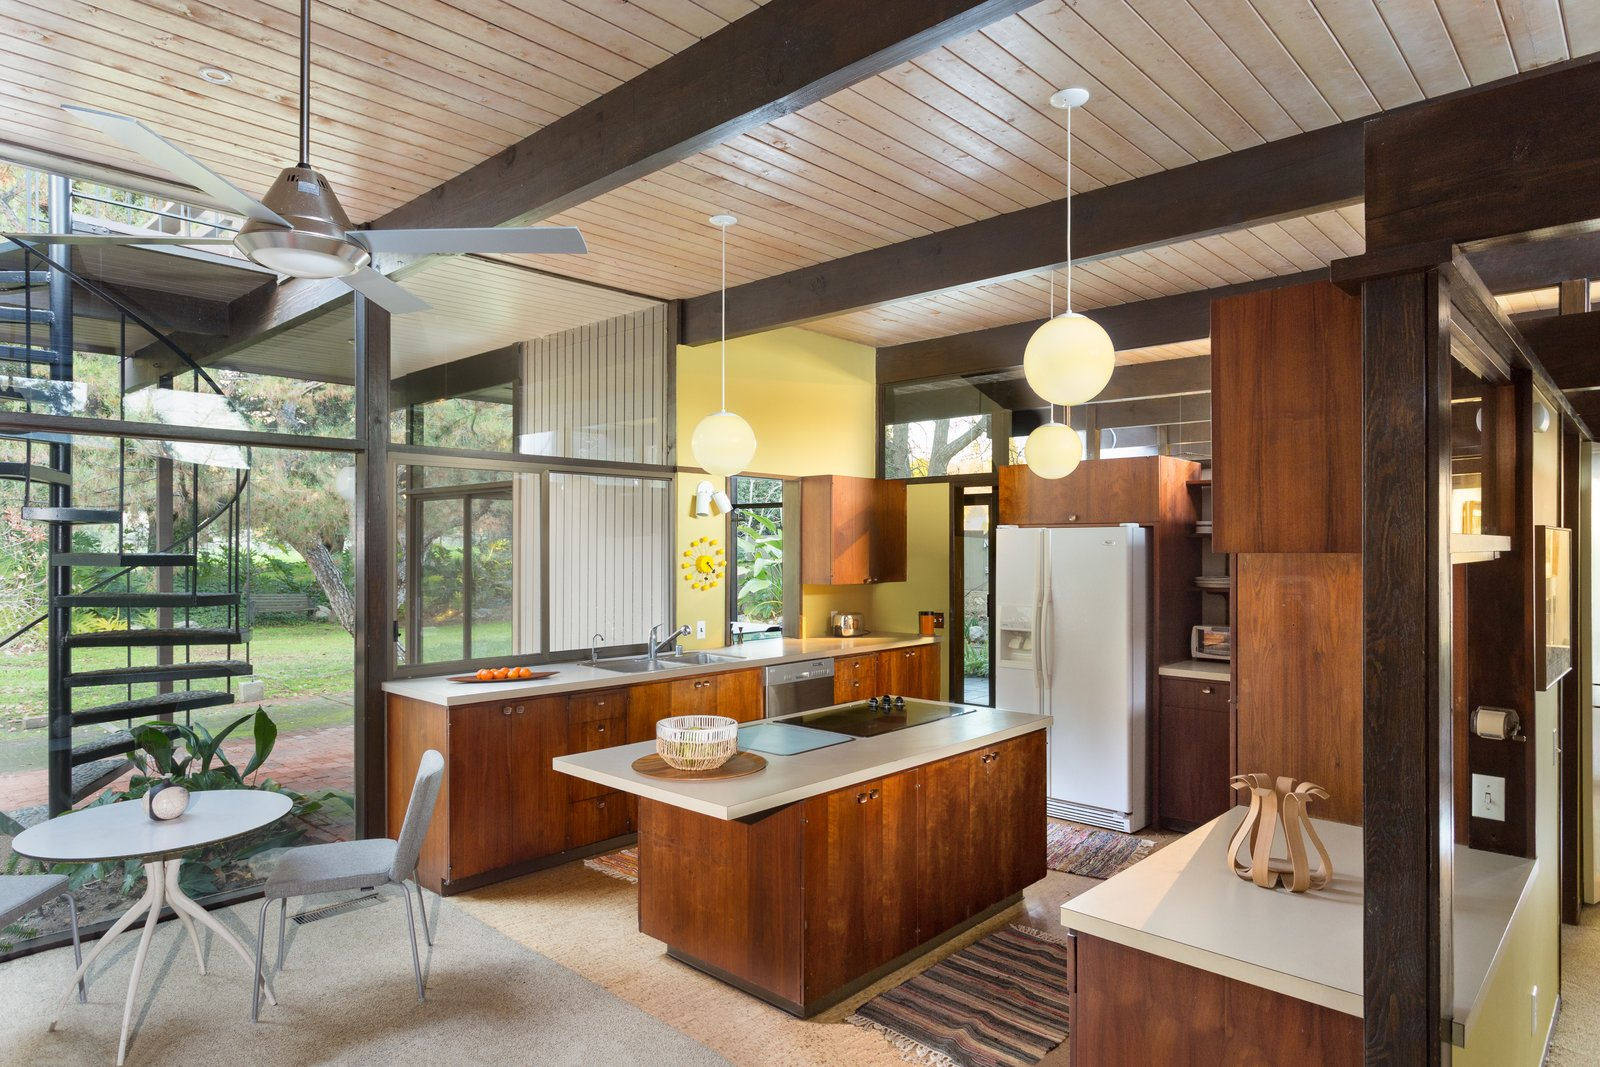 Carpeting, cork, and tile flooring run throughout the house, which is T-shaped in floor plan.